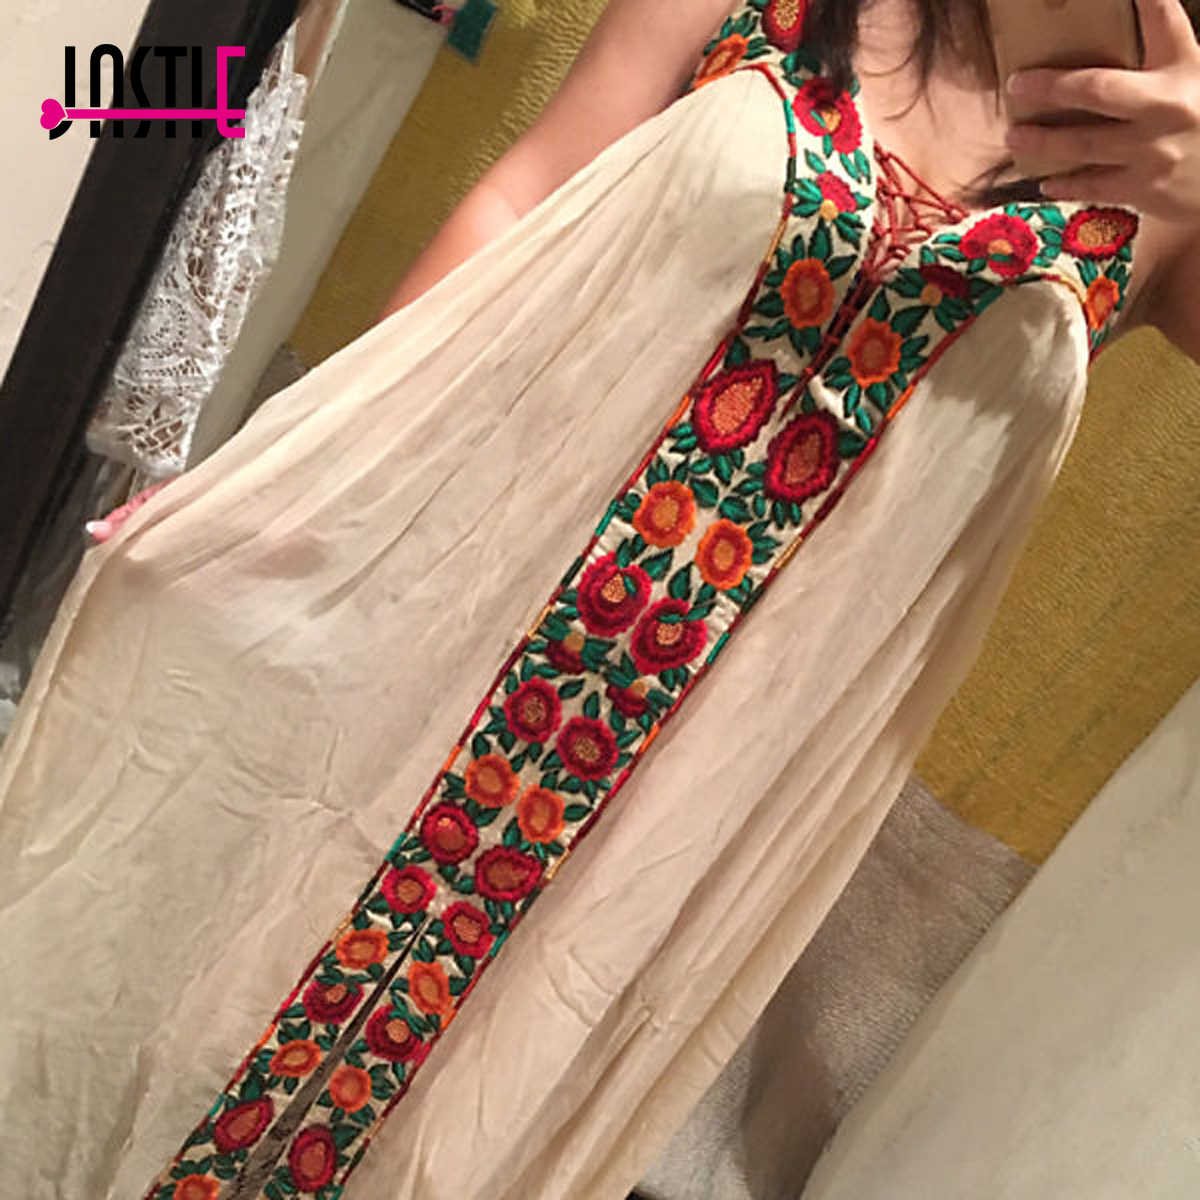 7a6d57aea016 ... Jastie Free-Flowing Maxi Dress Floral Embroidery Boho Dress V-Neck  Lace-Up ...